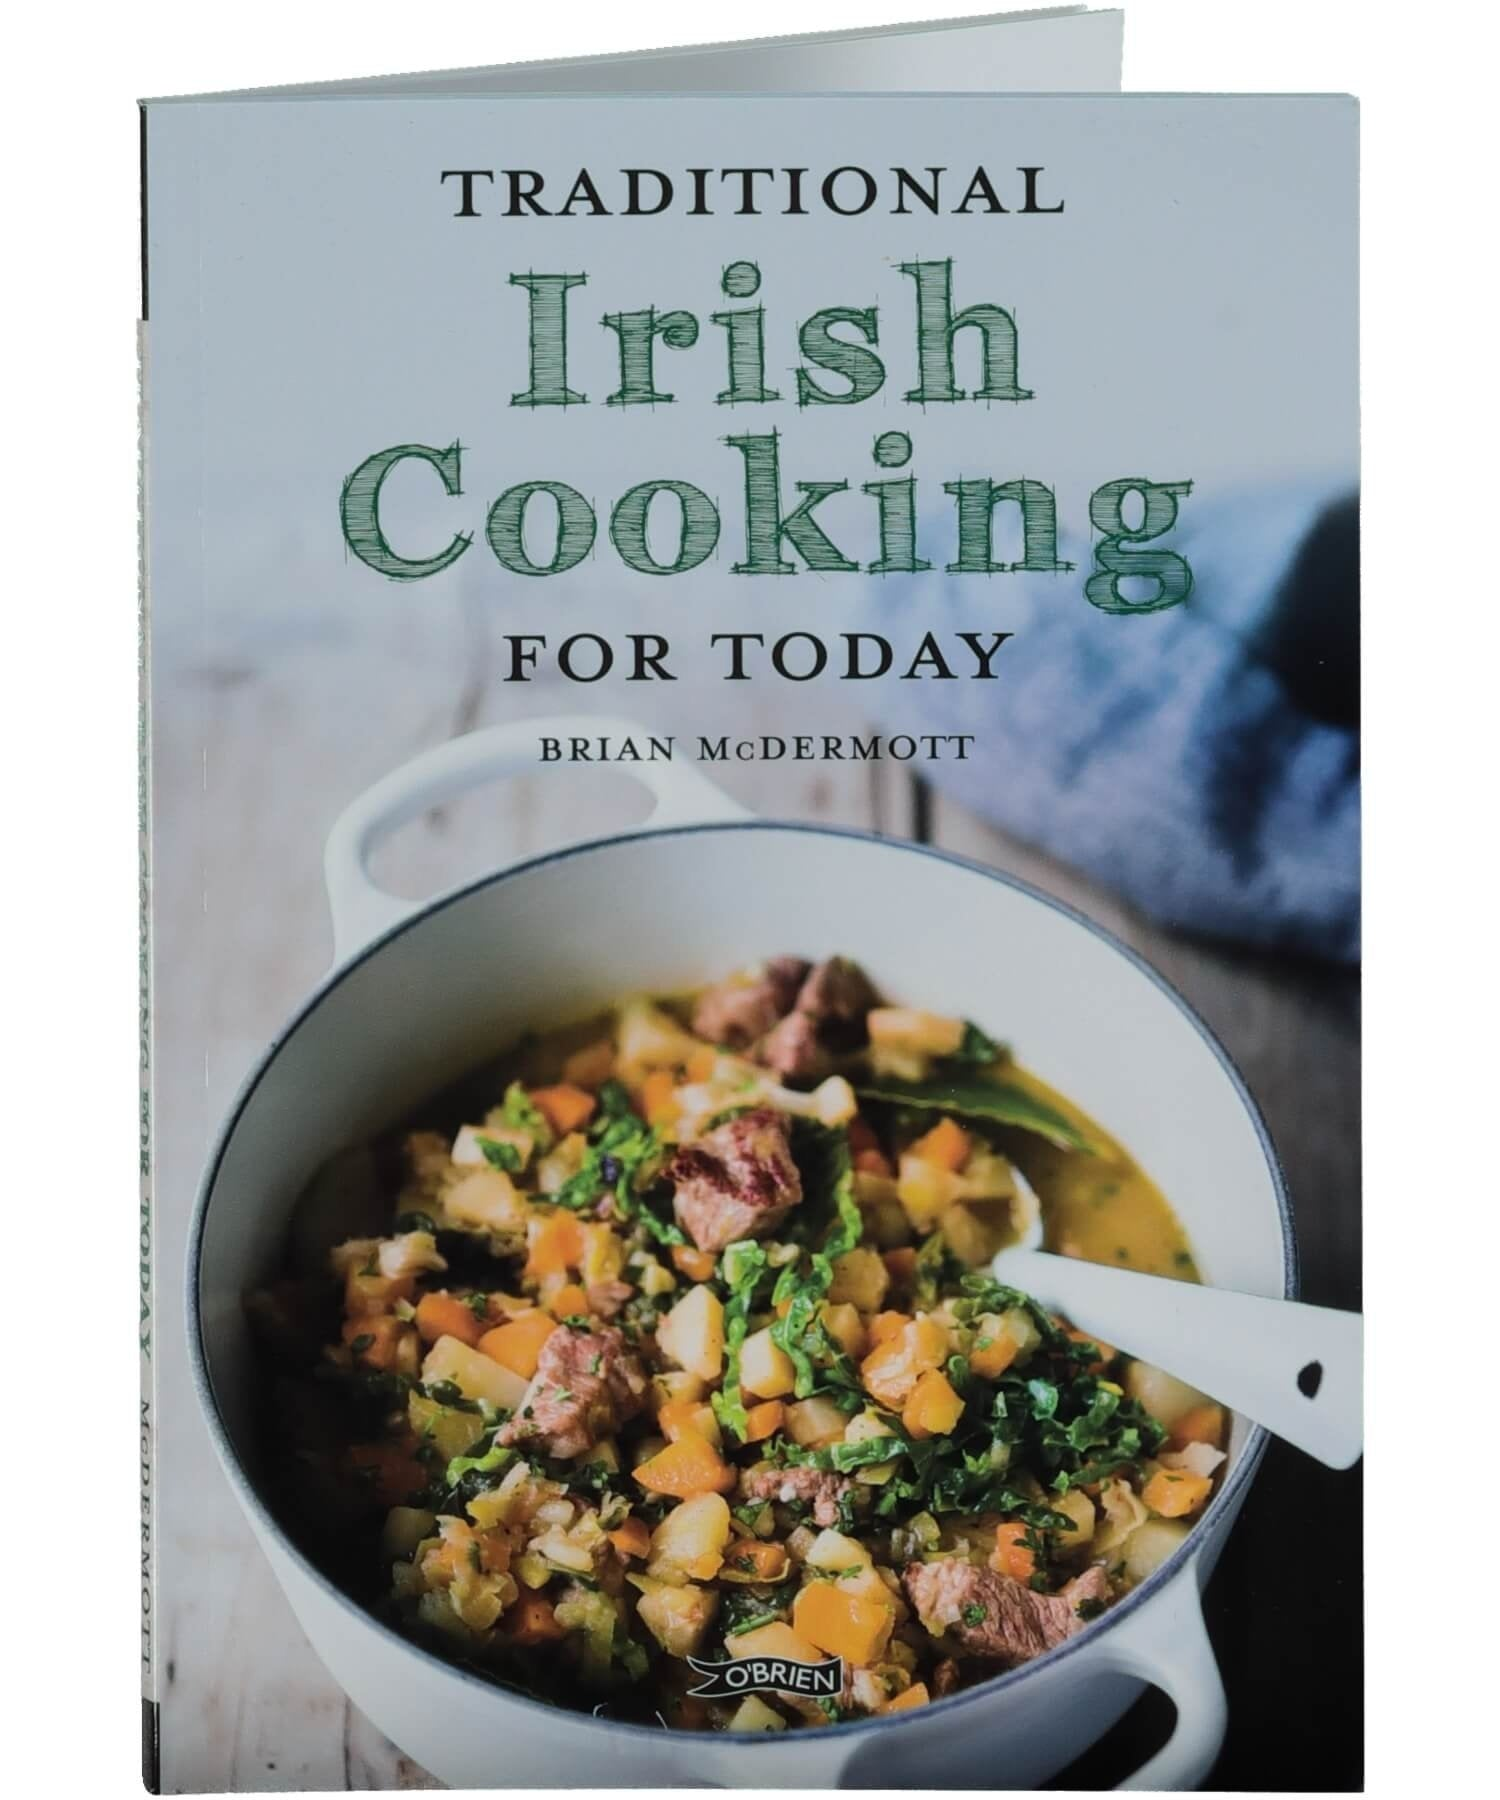 Traditional Irish Cooking - [The O'Brien Press] - Books & Stationery - Irish Gifts